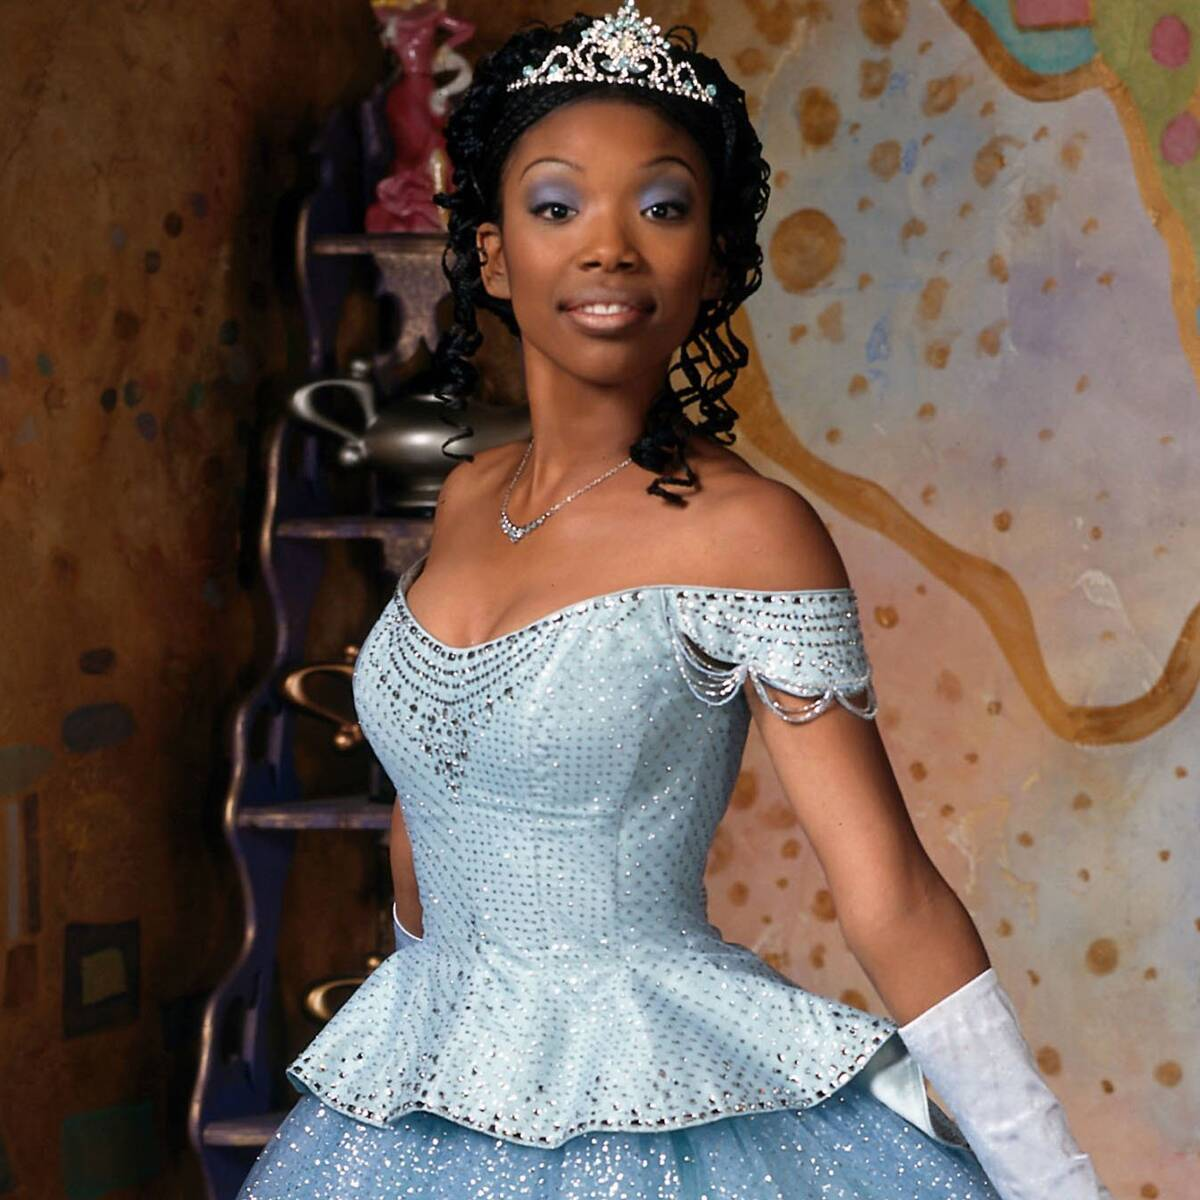 Impossible No More: Rodgers & Hammerstein's Cinderella Starring Brandy Is Coming to Disney+